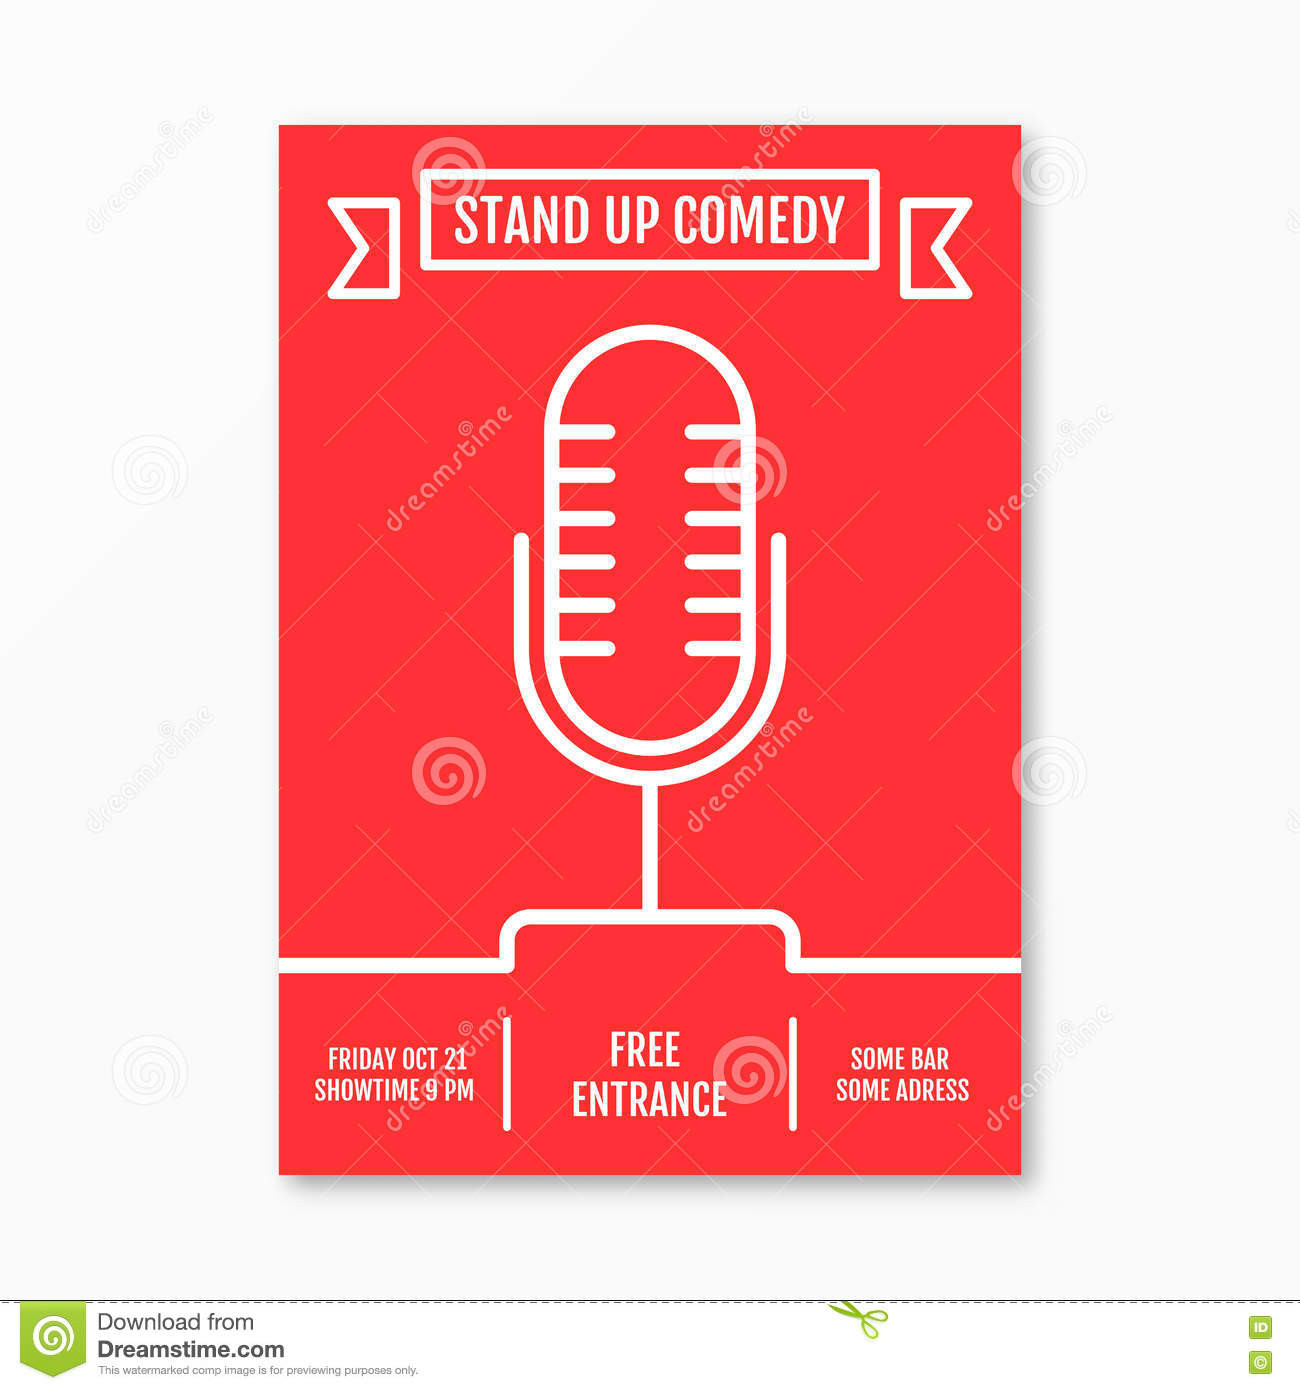 Sungard Exhibition Stand Up Comedy : Night club vector illustration